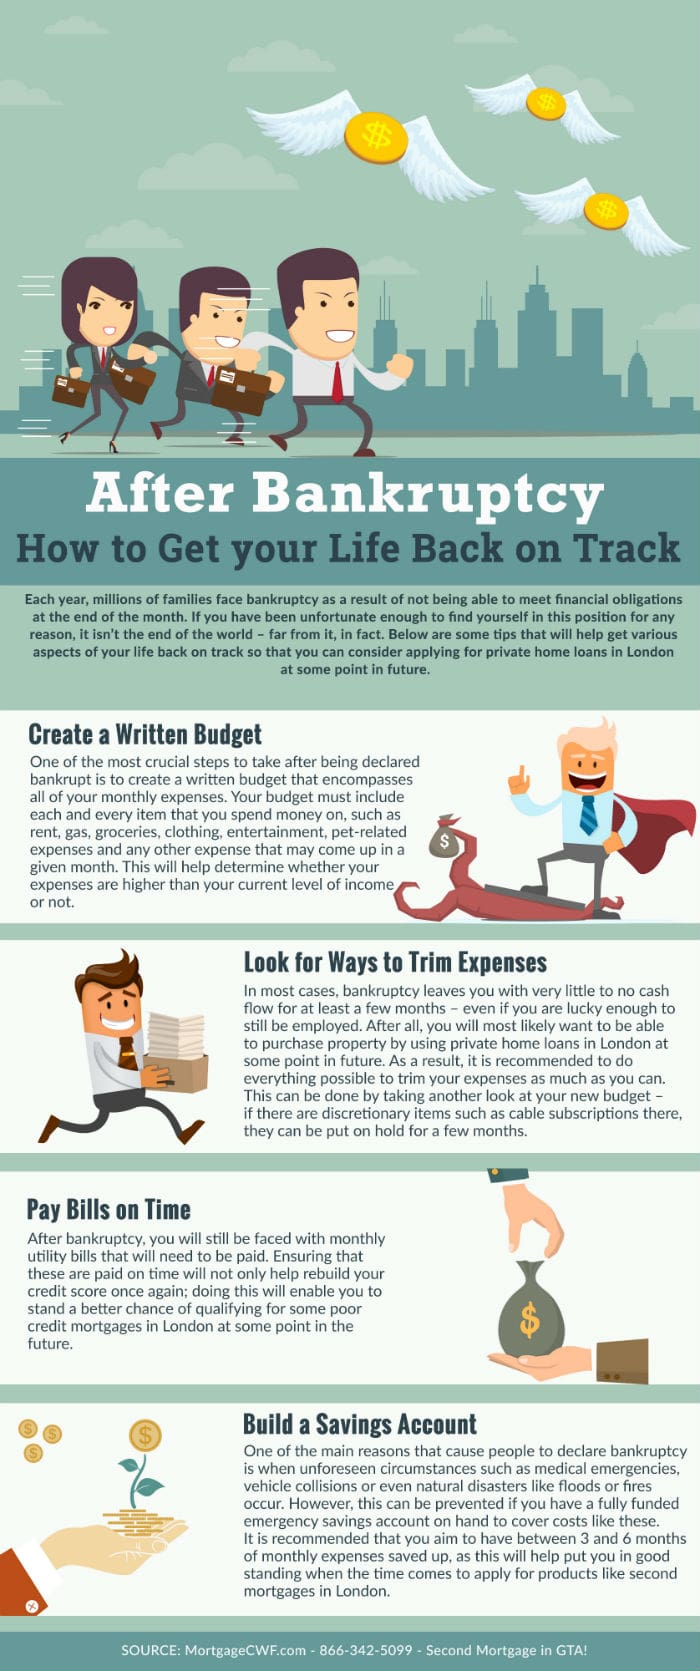 After Bankruptcy: How to Get your Life Back on Track